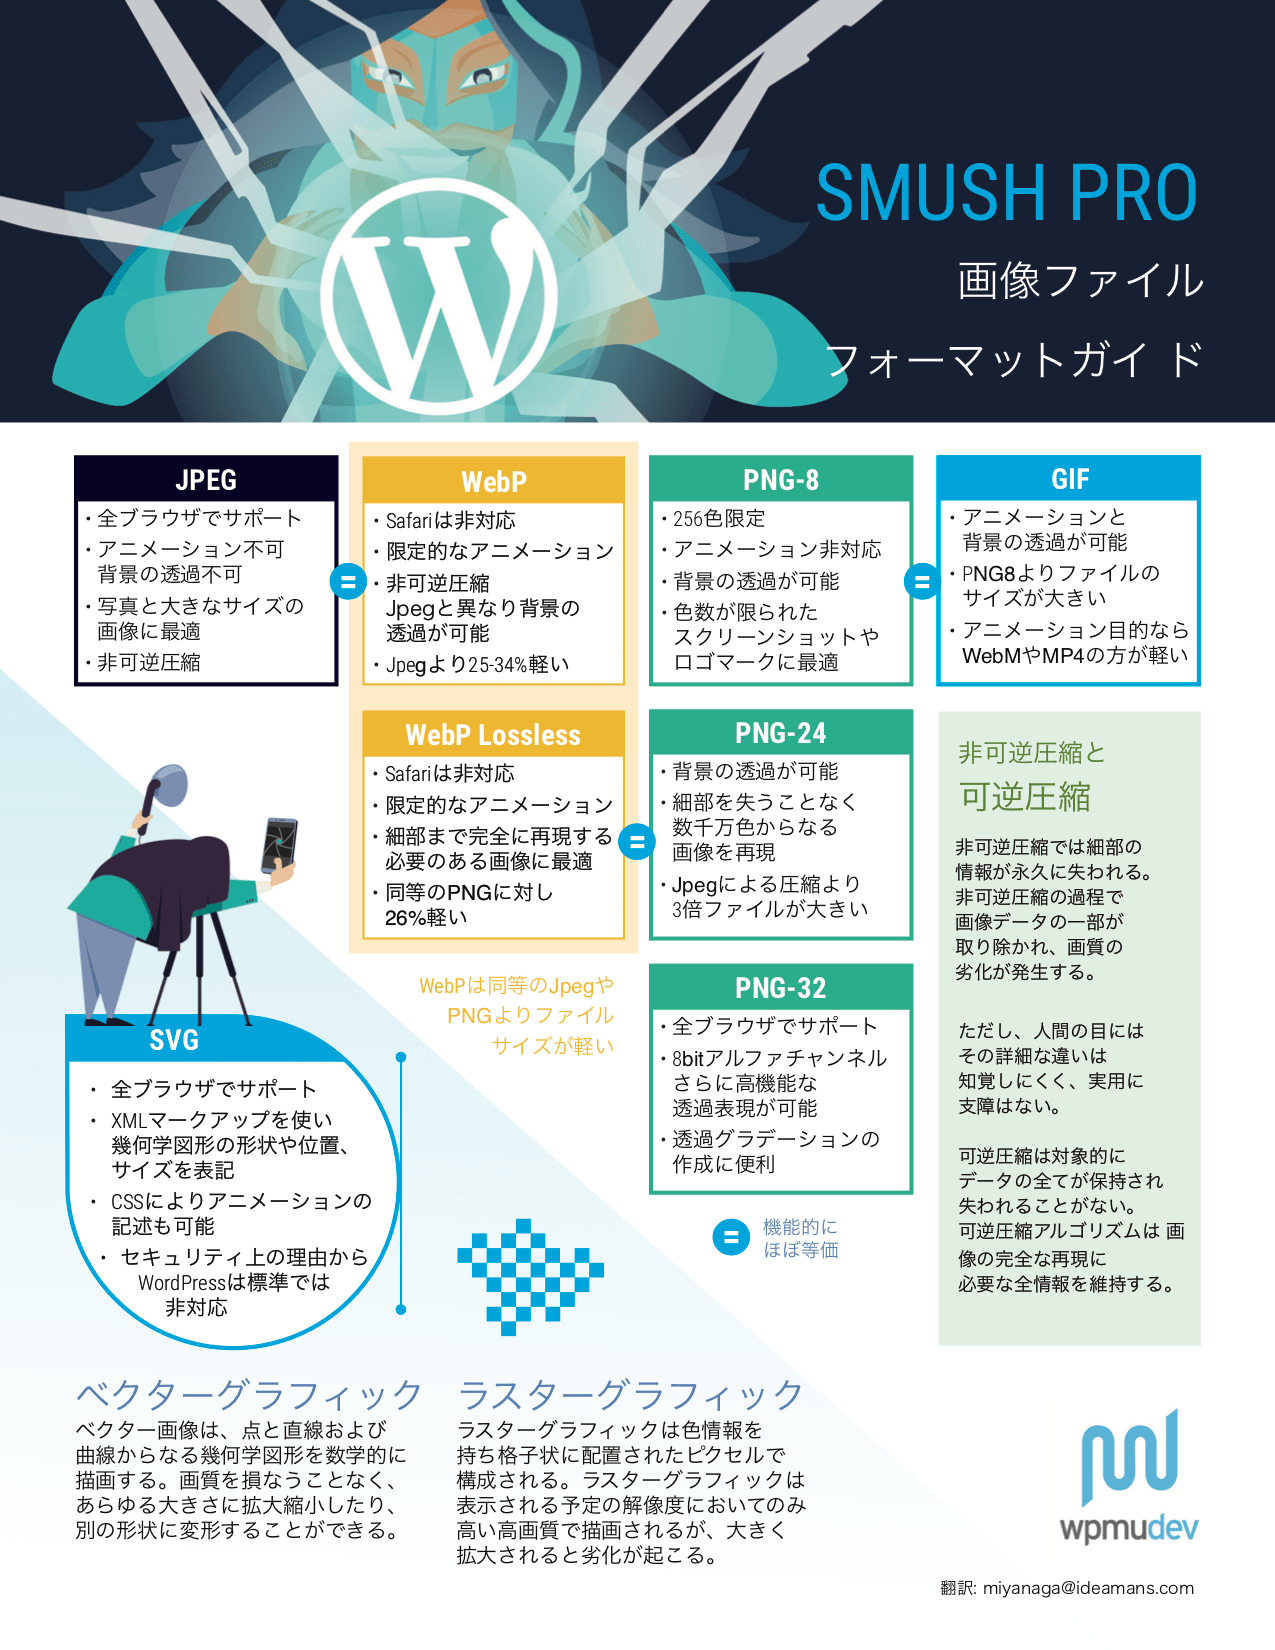 Smush-Guide-to-Image-formates-JP-fs8.png